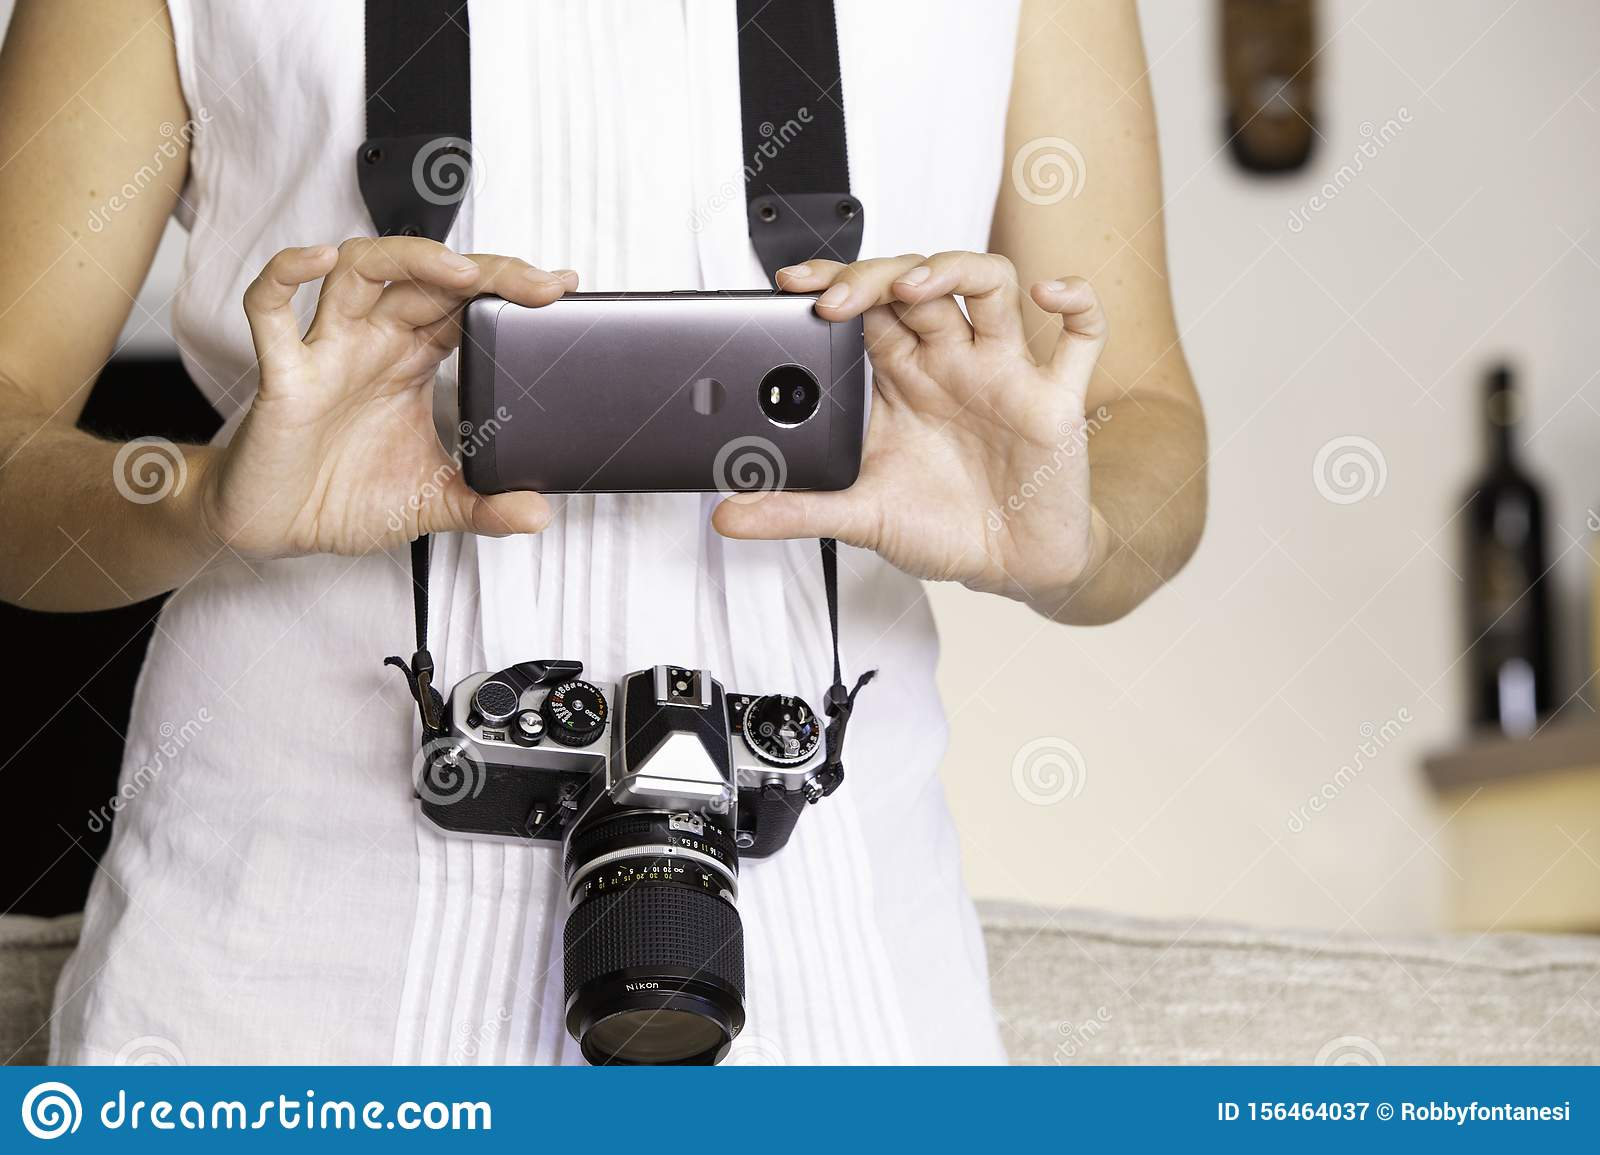 Contrast between old and modern times: a young woman with a vintage camera around her neck fiddles with her smartphone